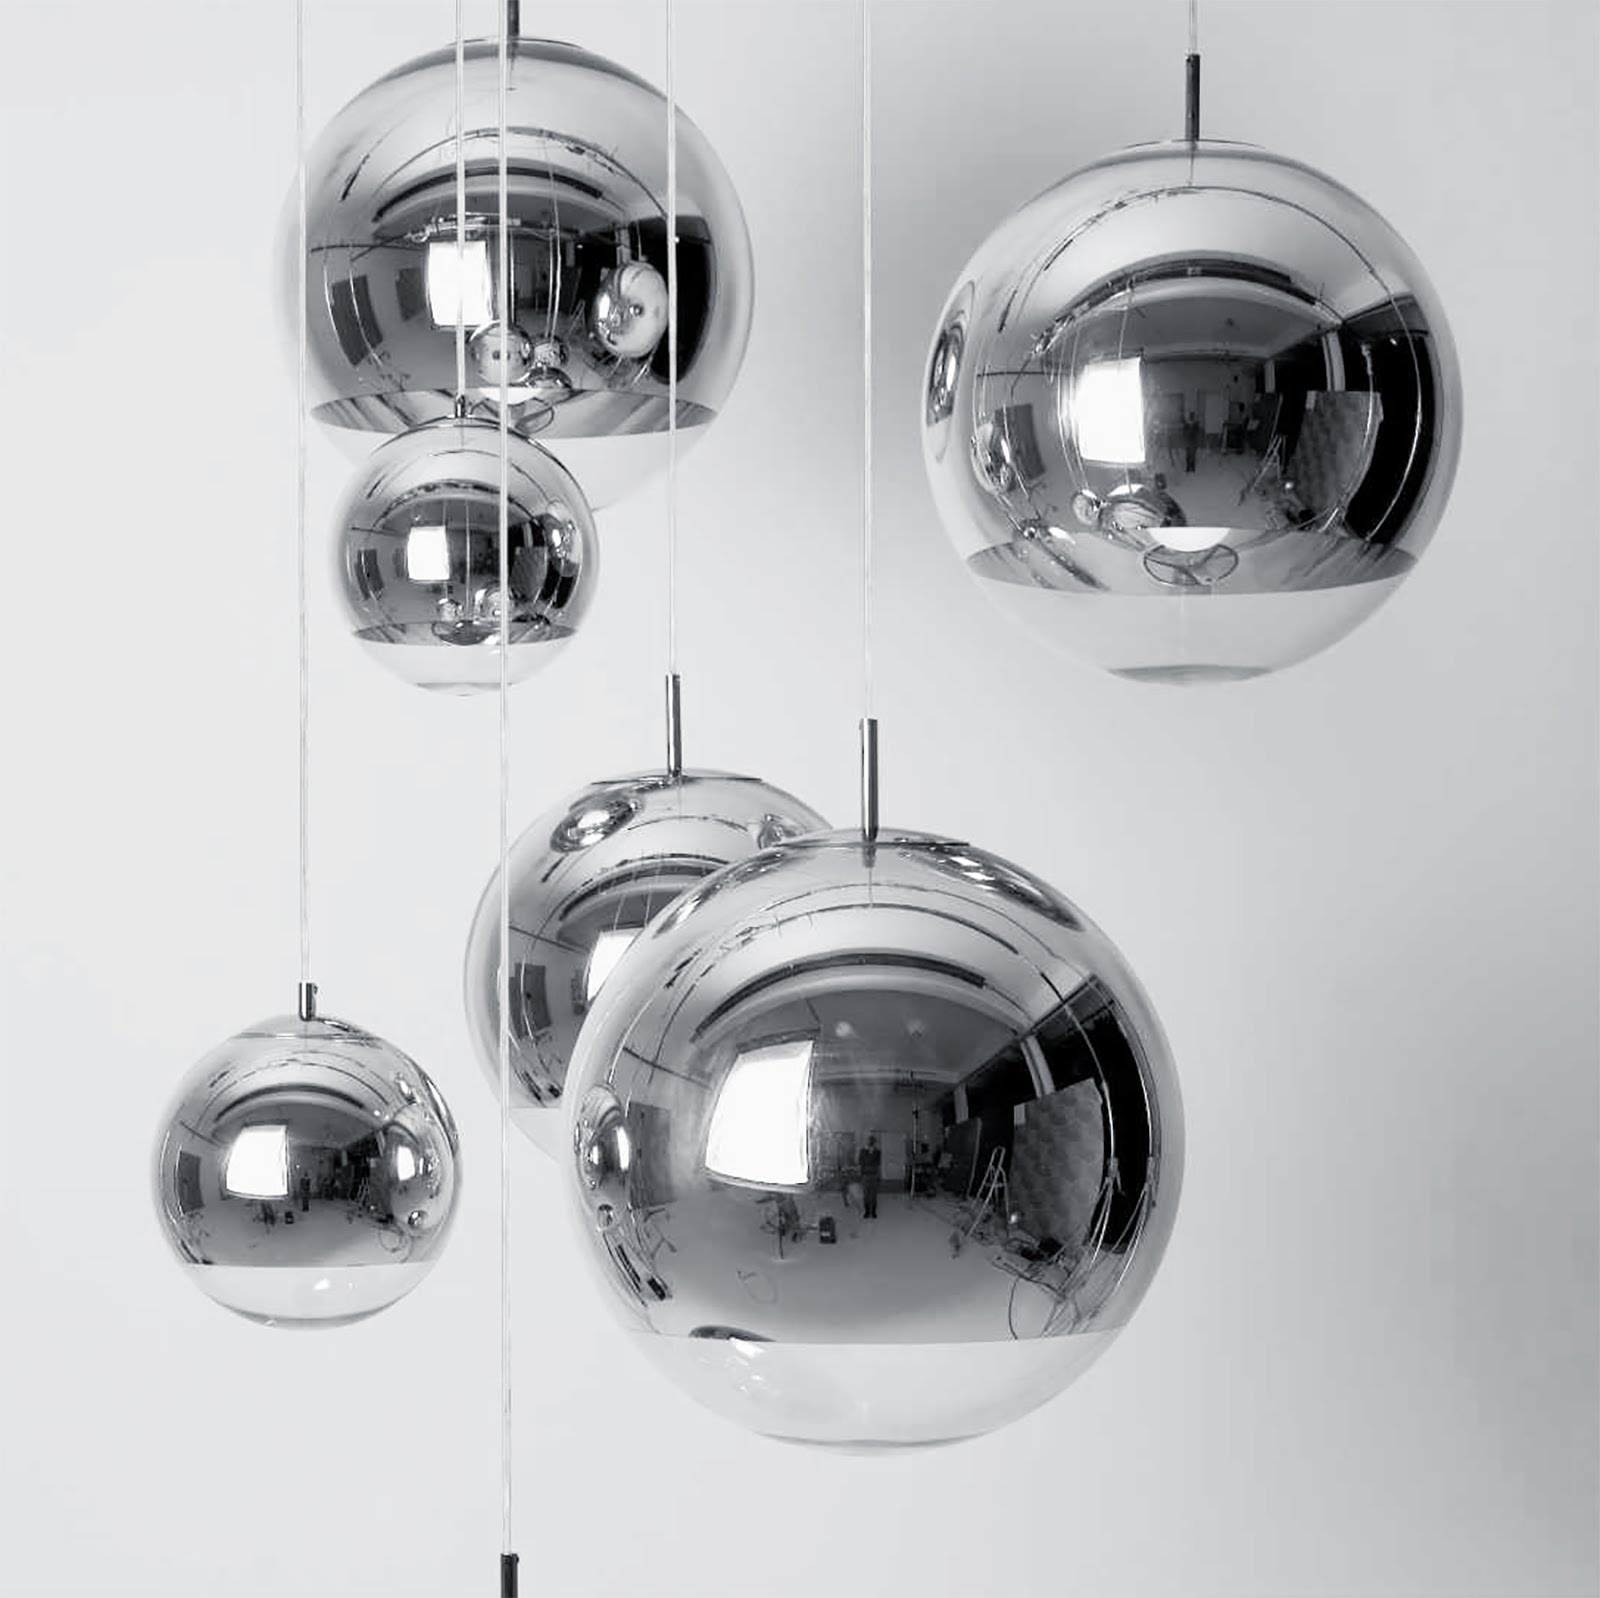 Mirror ball pendant chrome lamp, tom dixon, mister design